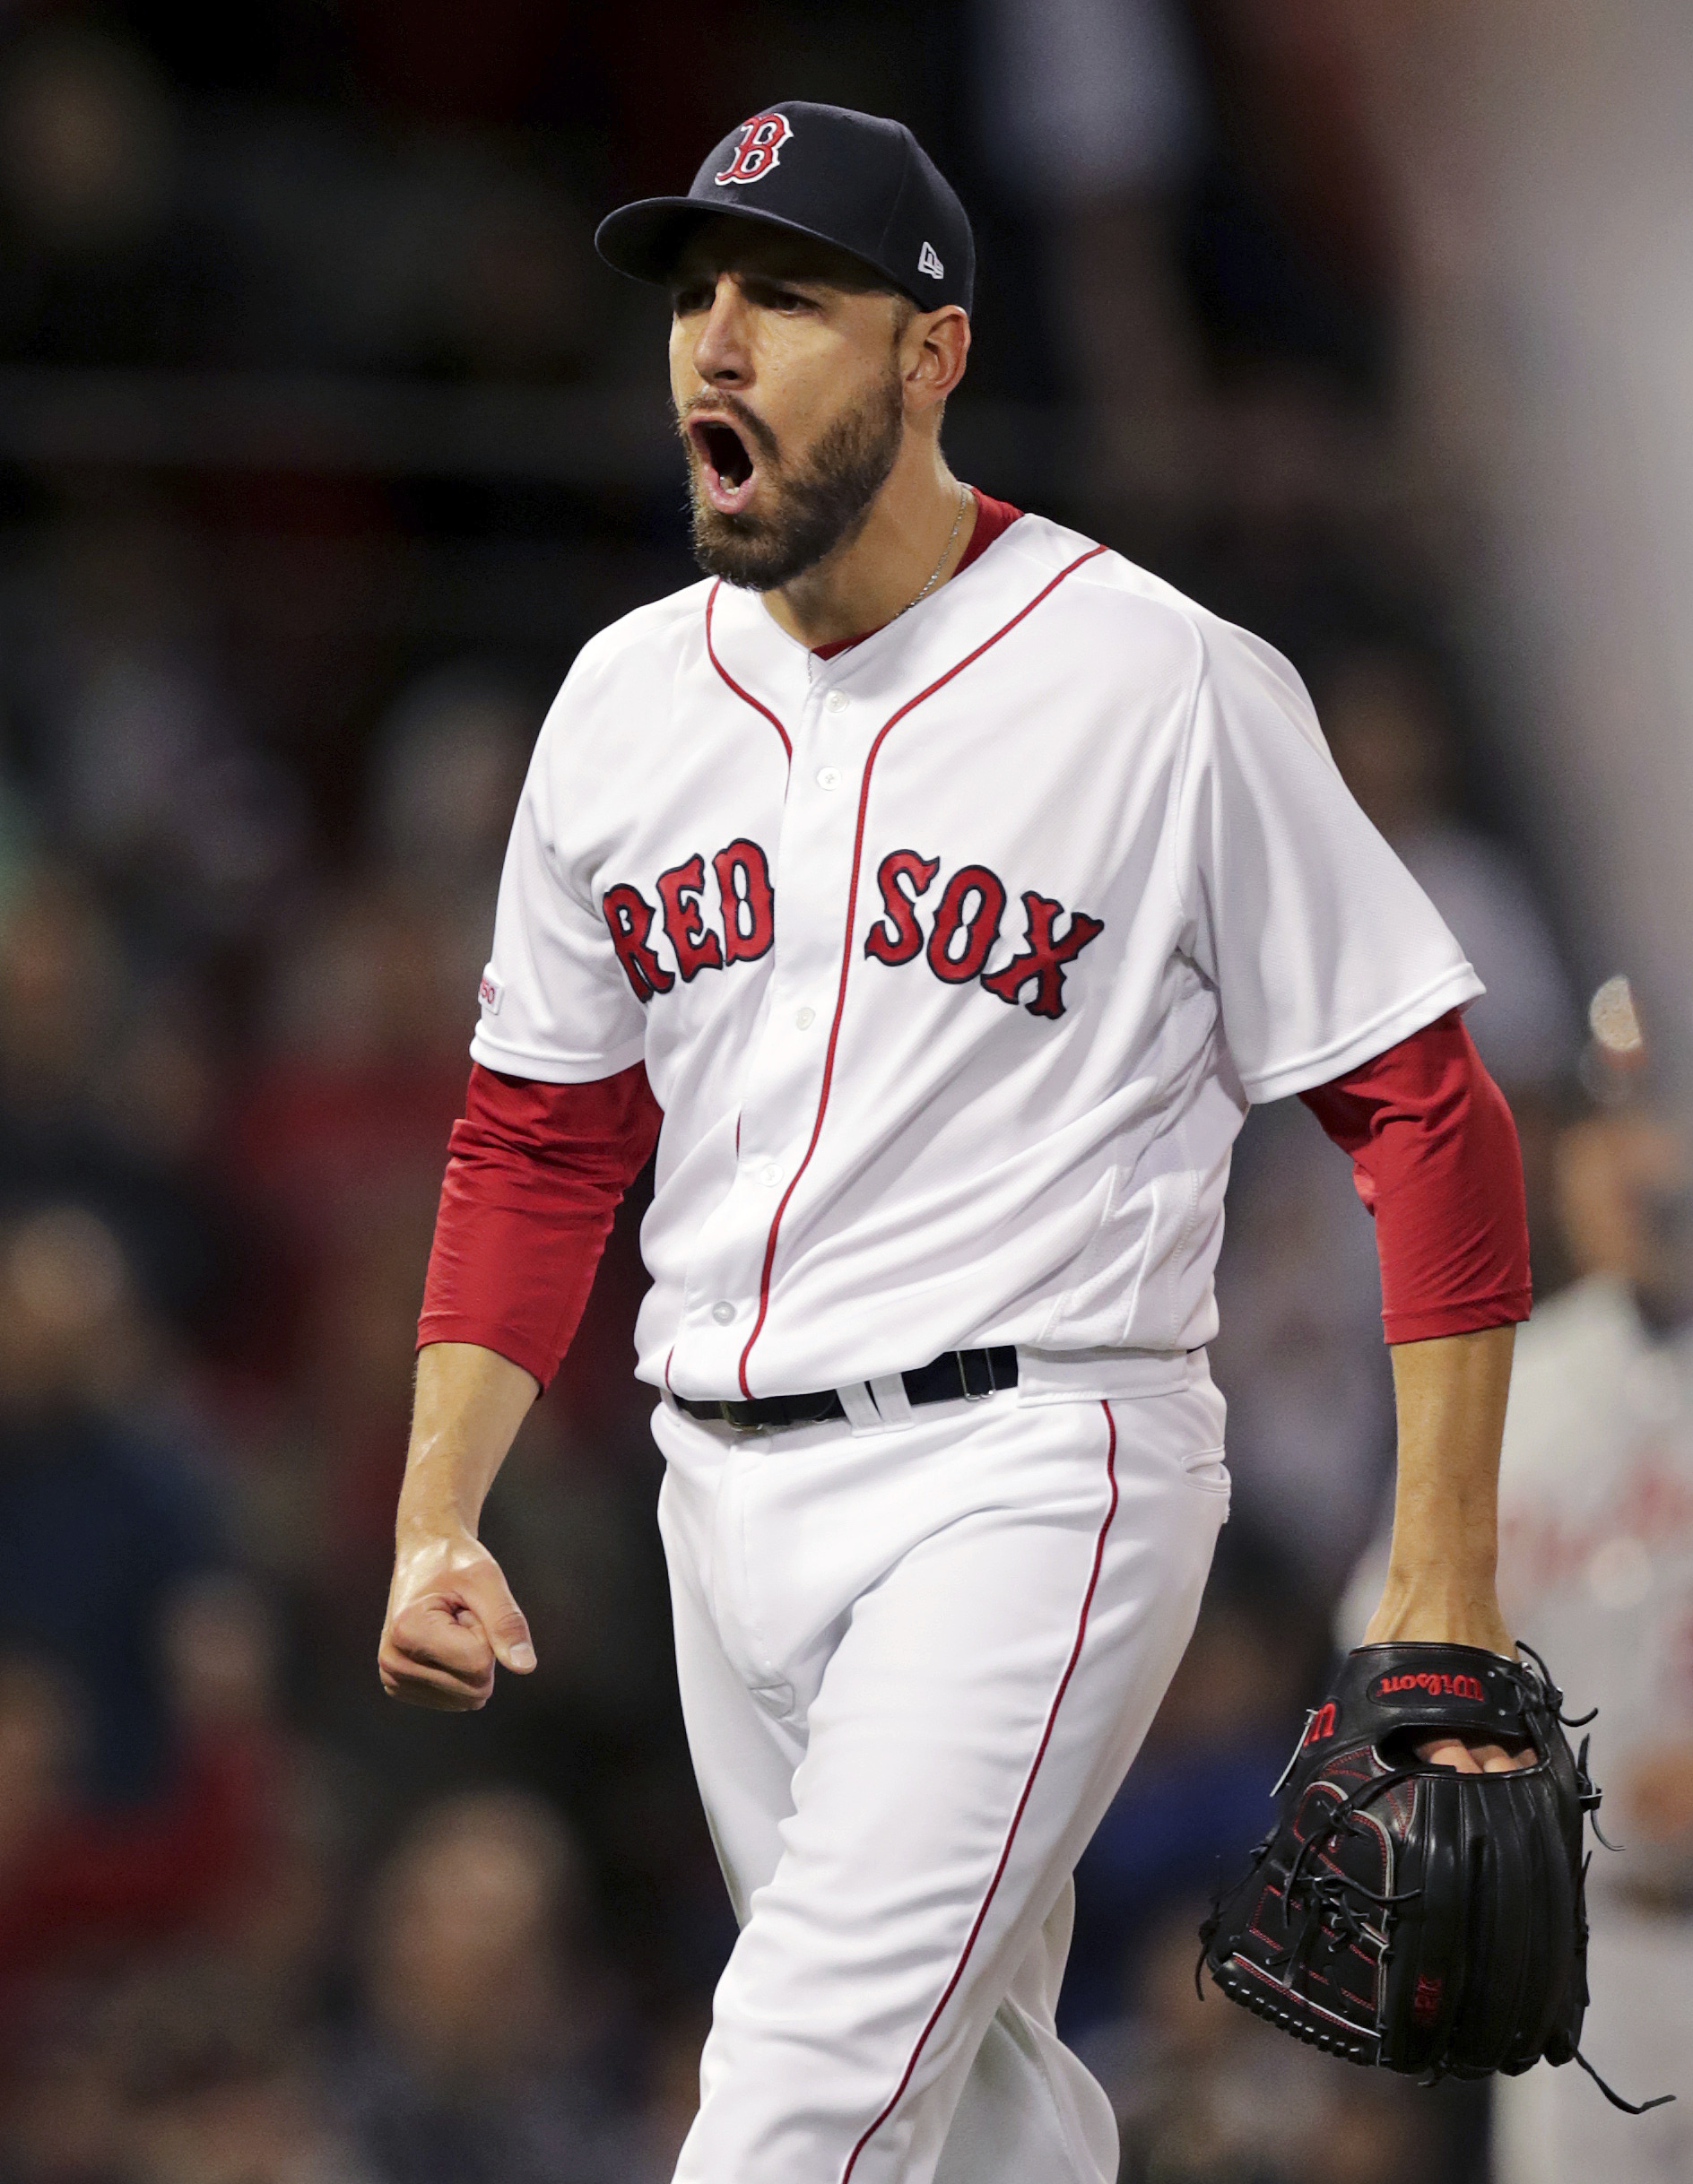 Boston Red Sox relief pitcher Matt Barnes yells after striking out Detroit Tigers' Ronny Rodriguez with bases loaded to end the top of the eighth inning of a baseball game at Fenway Park, Wednesday, April 24, 2019, in Boston. (AP Photo/Charles Krupa)